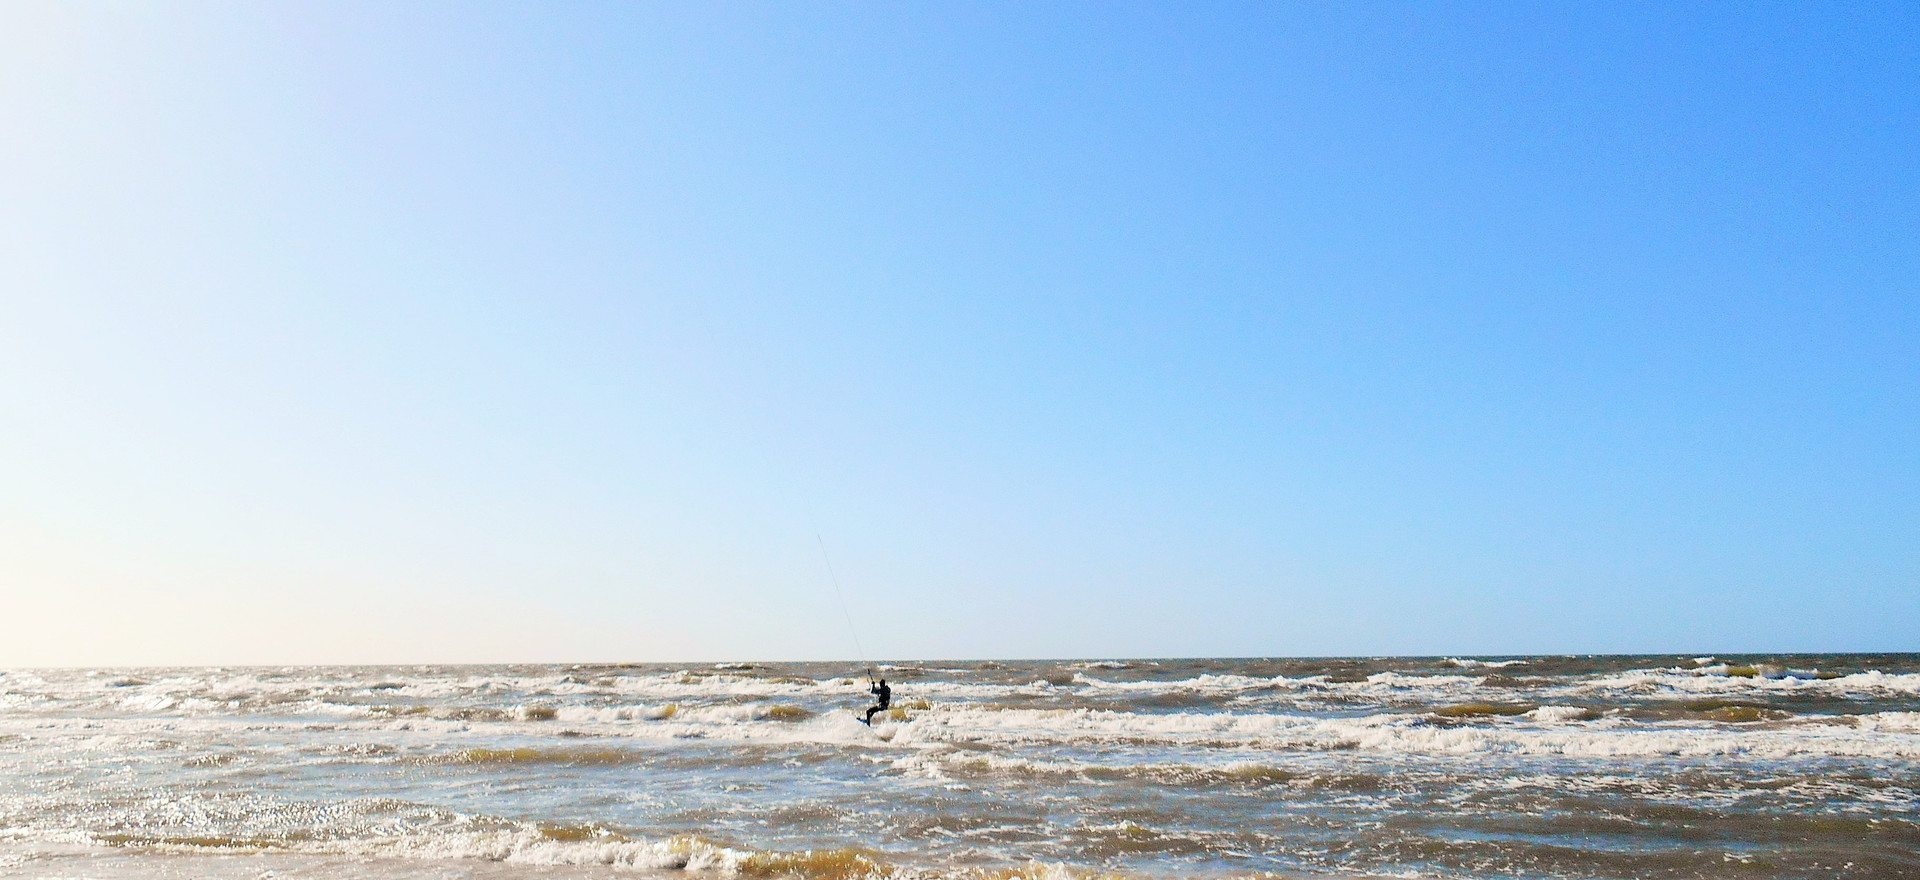 Kitesurfing song, Ventspils, March 2017